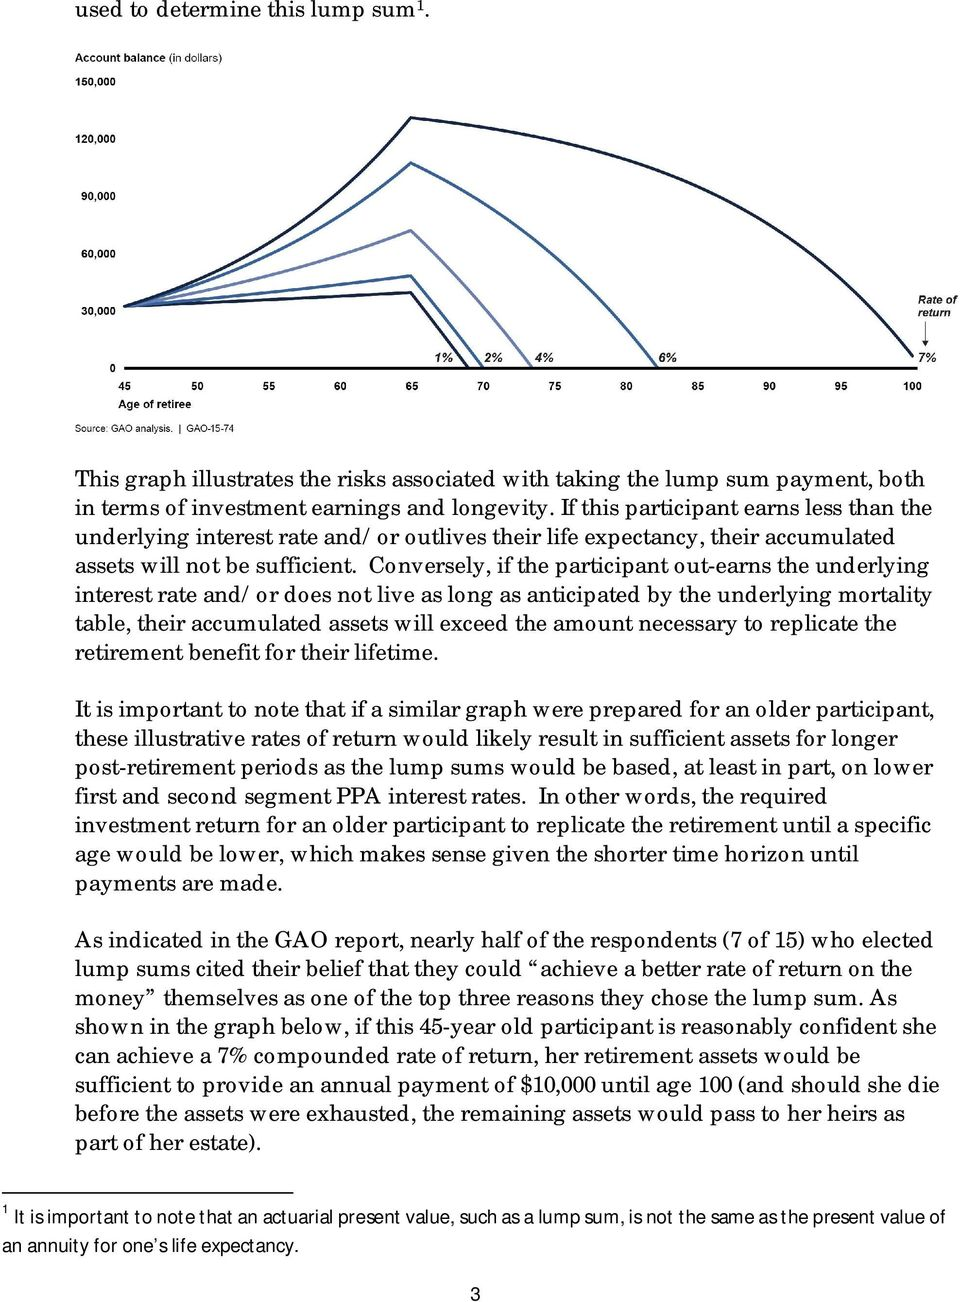 Conversely, if the participant out-earns the underlying interest rate and/or does not live as long as anticipated by the underlying mortality table, their accumulated assets will exceed the amount